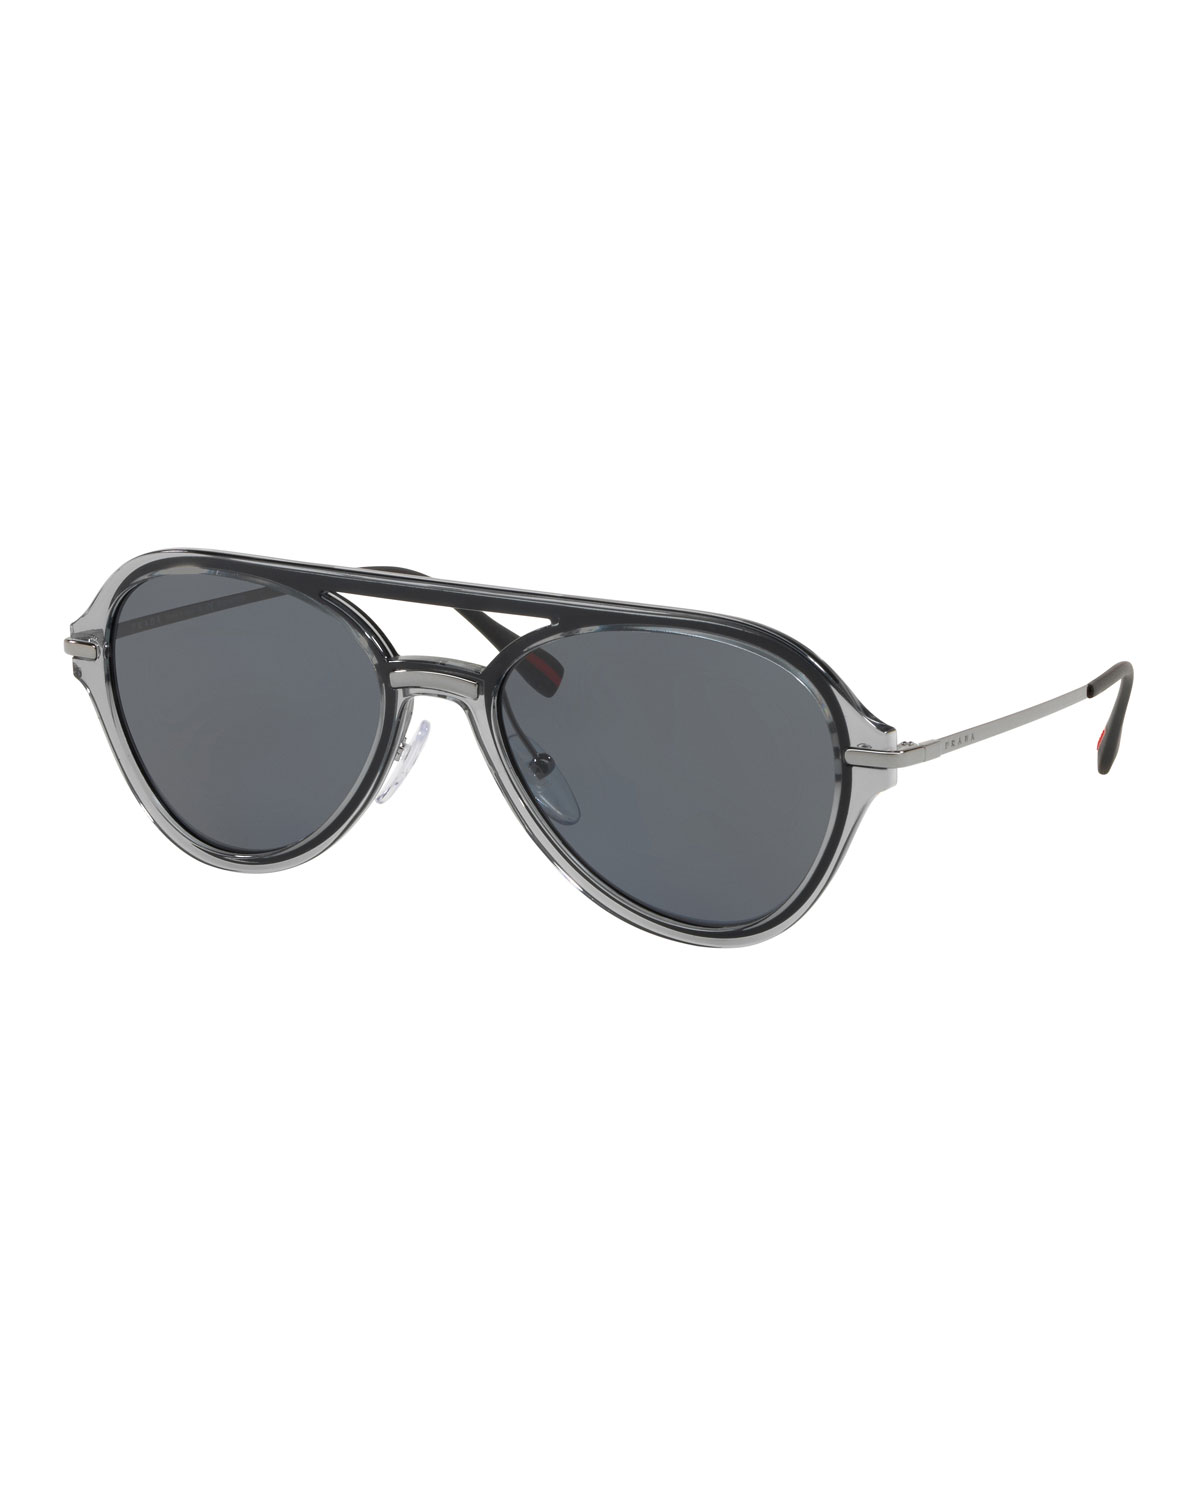 333906bb9ab Prada Men s Plastic Solid Polarized Aviator Sunglasses